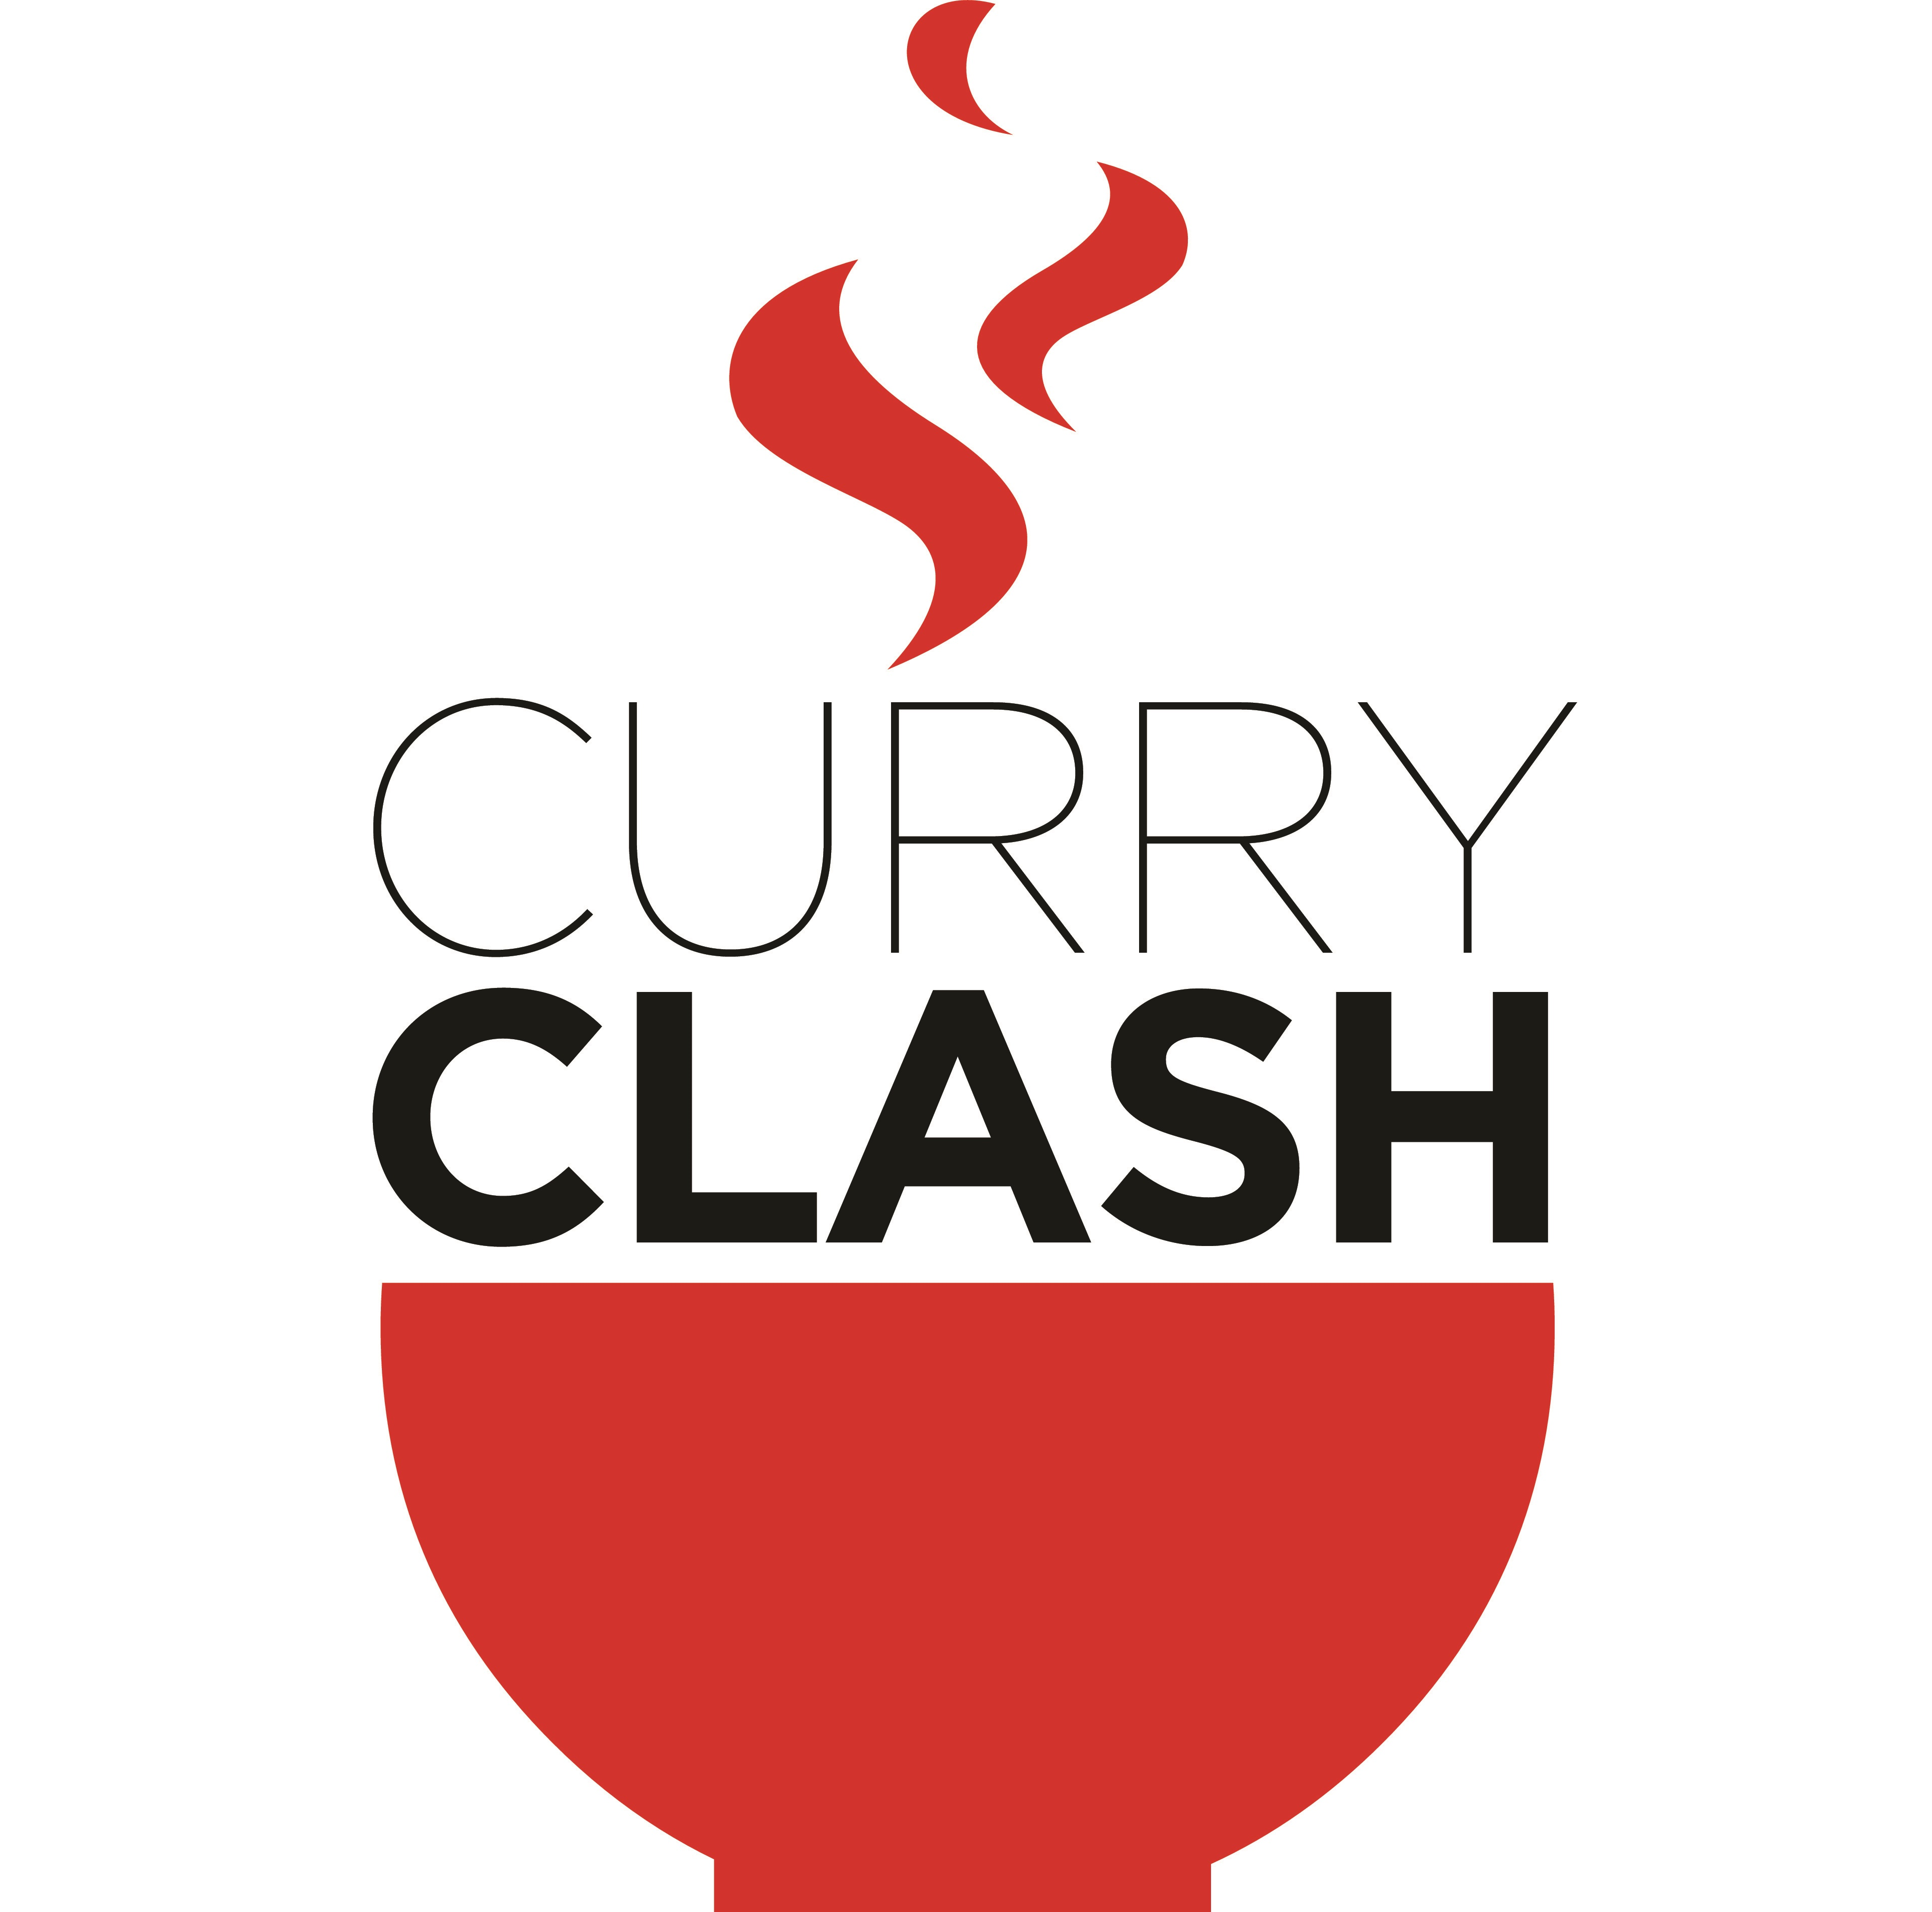 Curry Clash 2019 - November 7